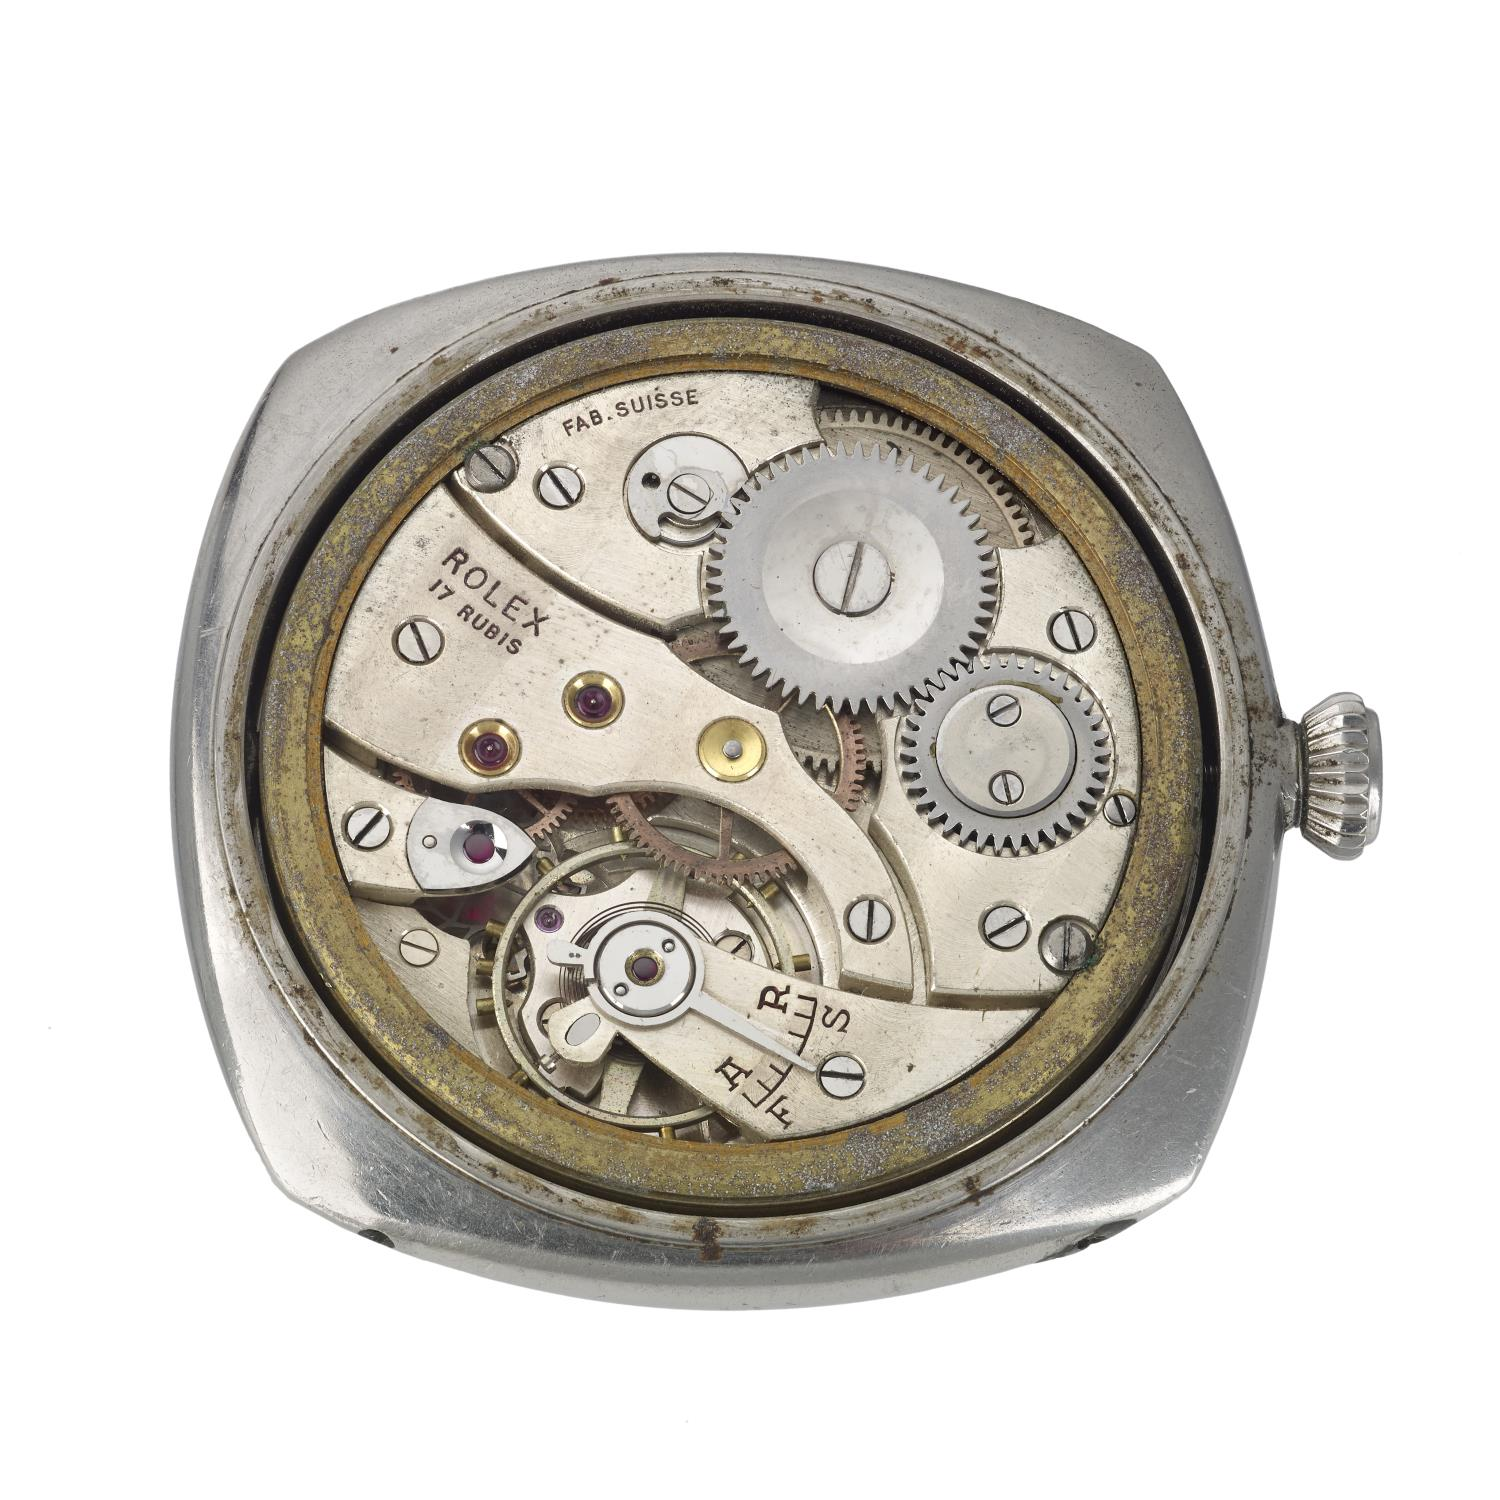 Lot 159 - PANERAI - a very rare and special Second World War military Diver watch head.